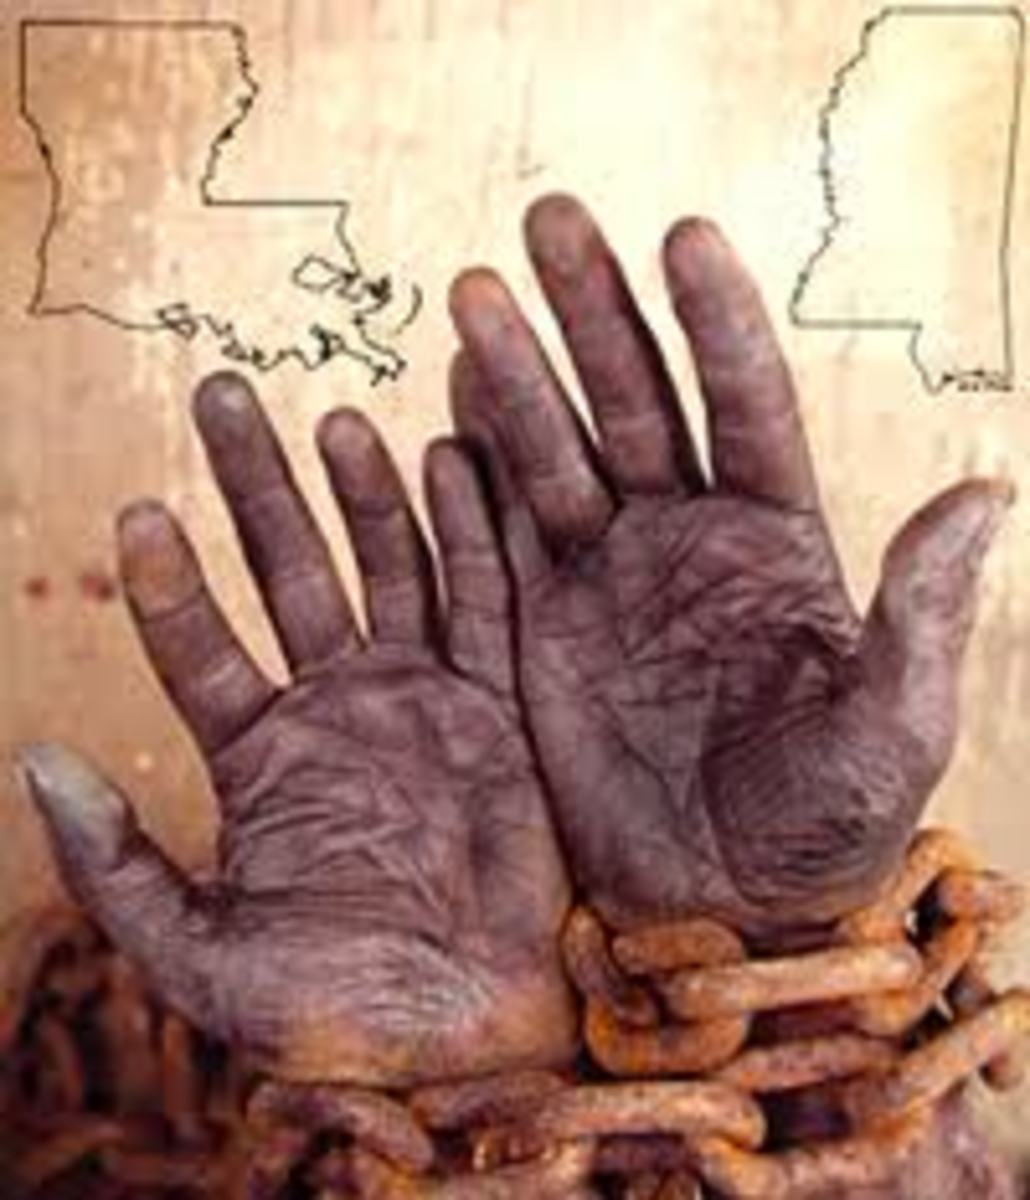 During enslavement of Africans in the United States,many methods were devised to demoralize & divide them in order to subjugate & disempower them.